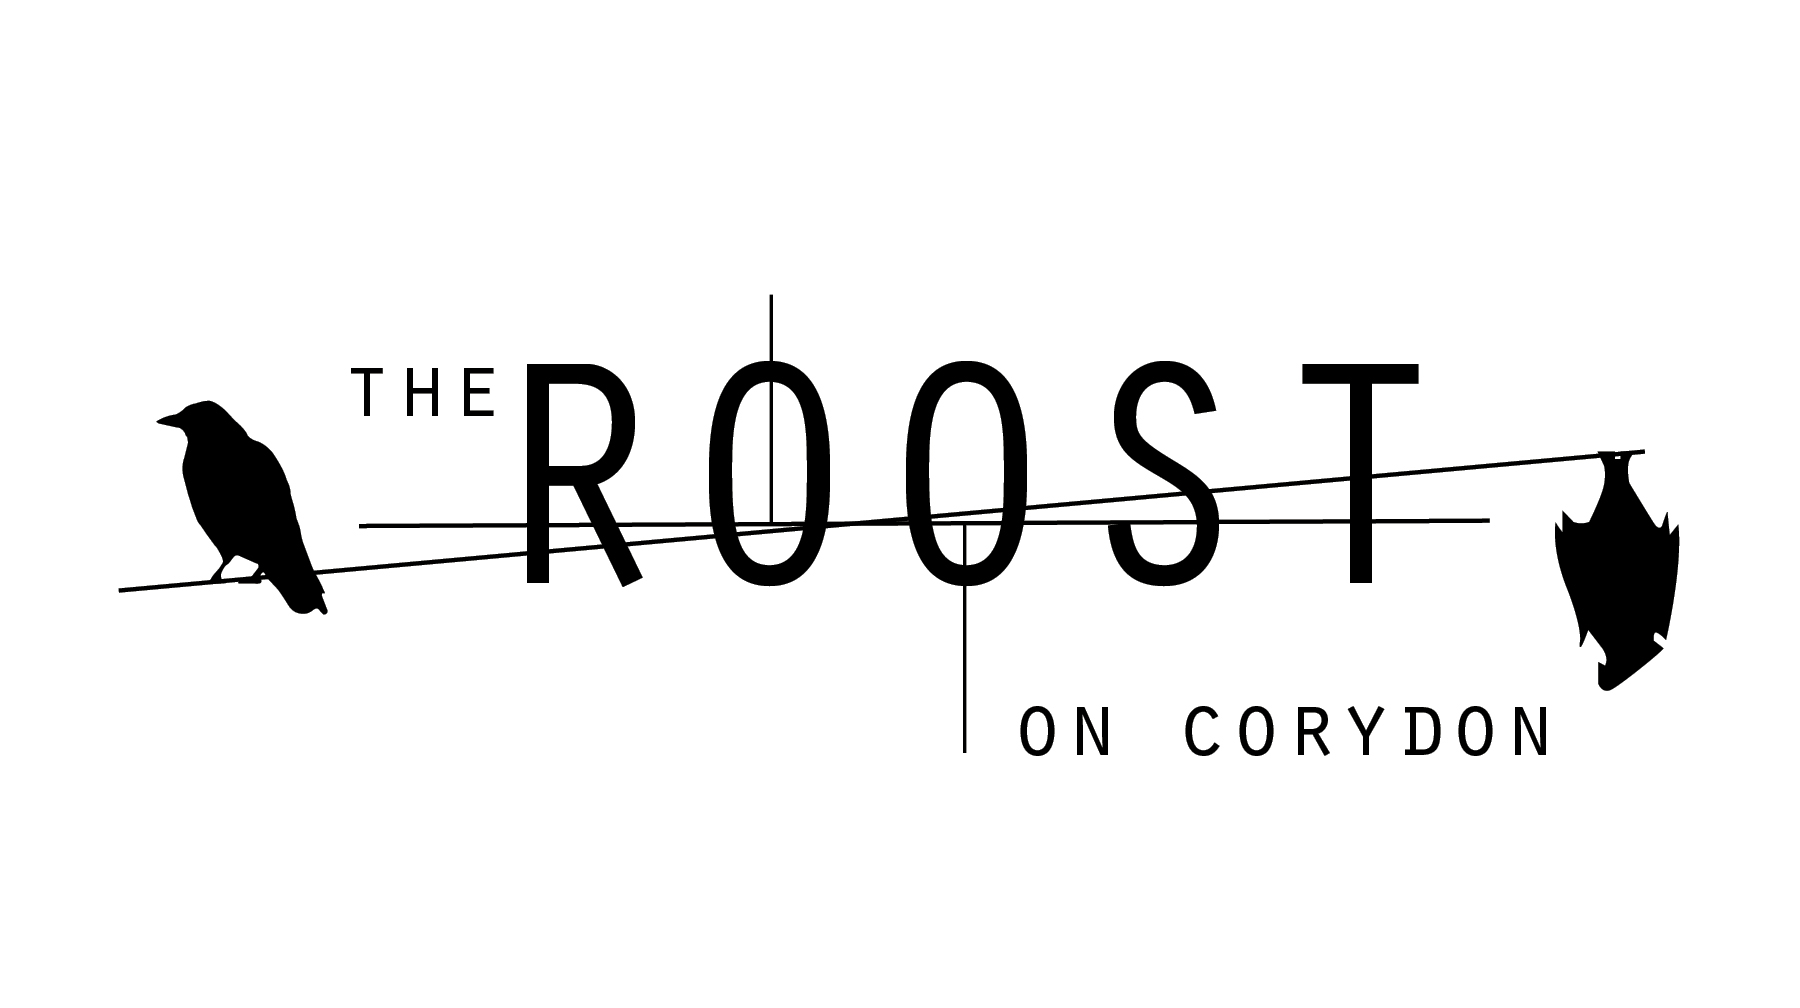 The roost.jpg